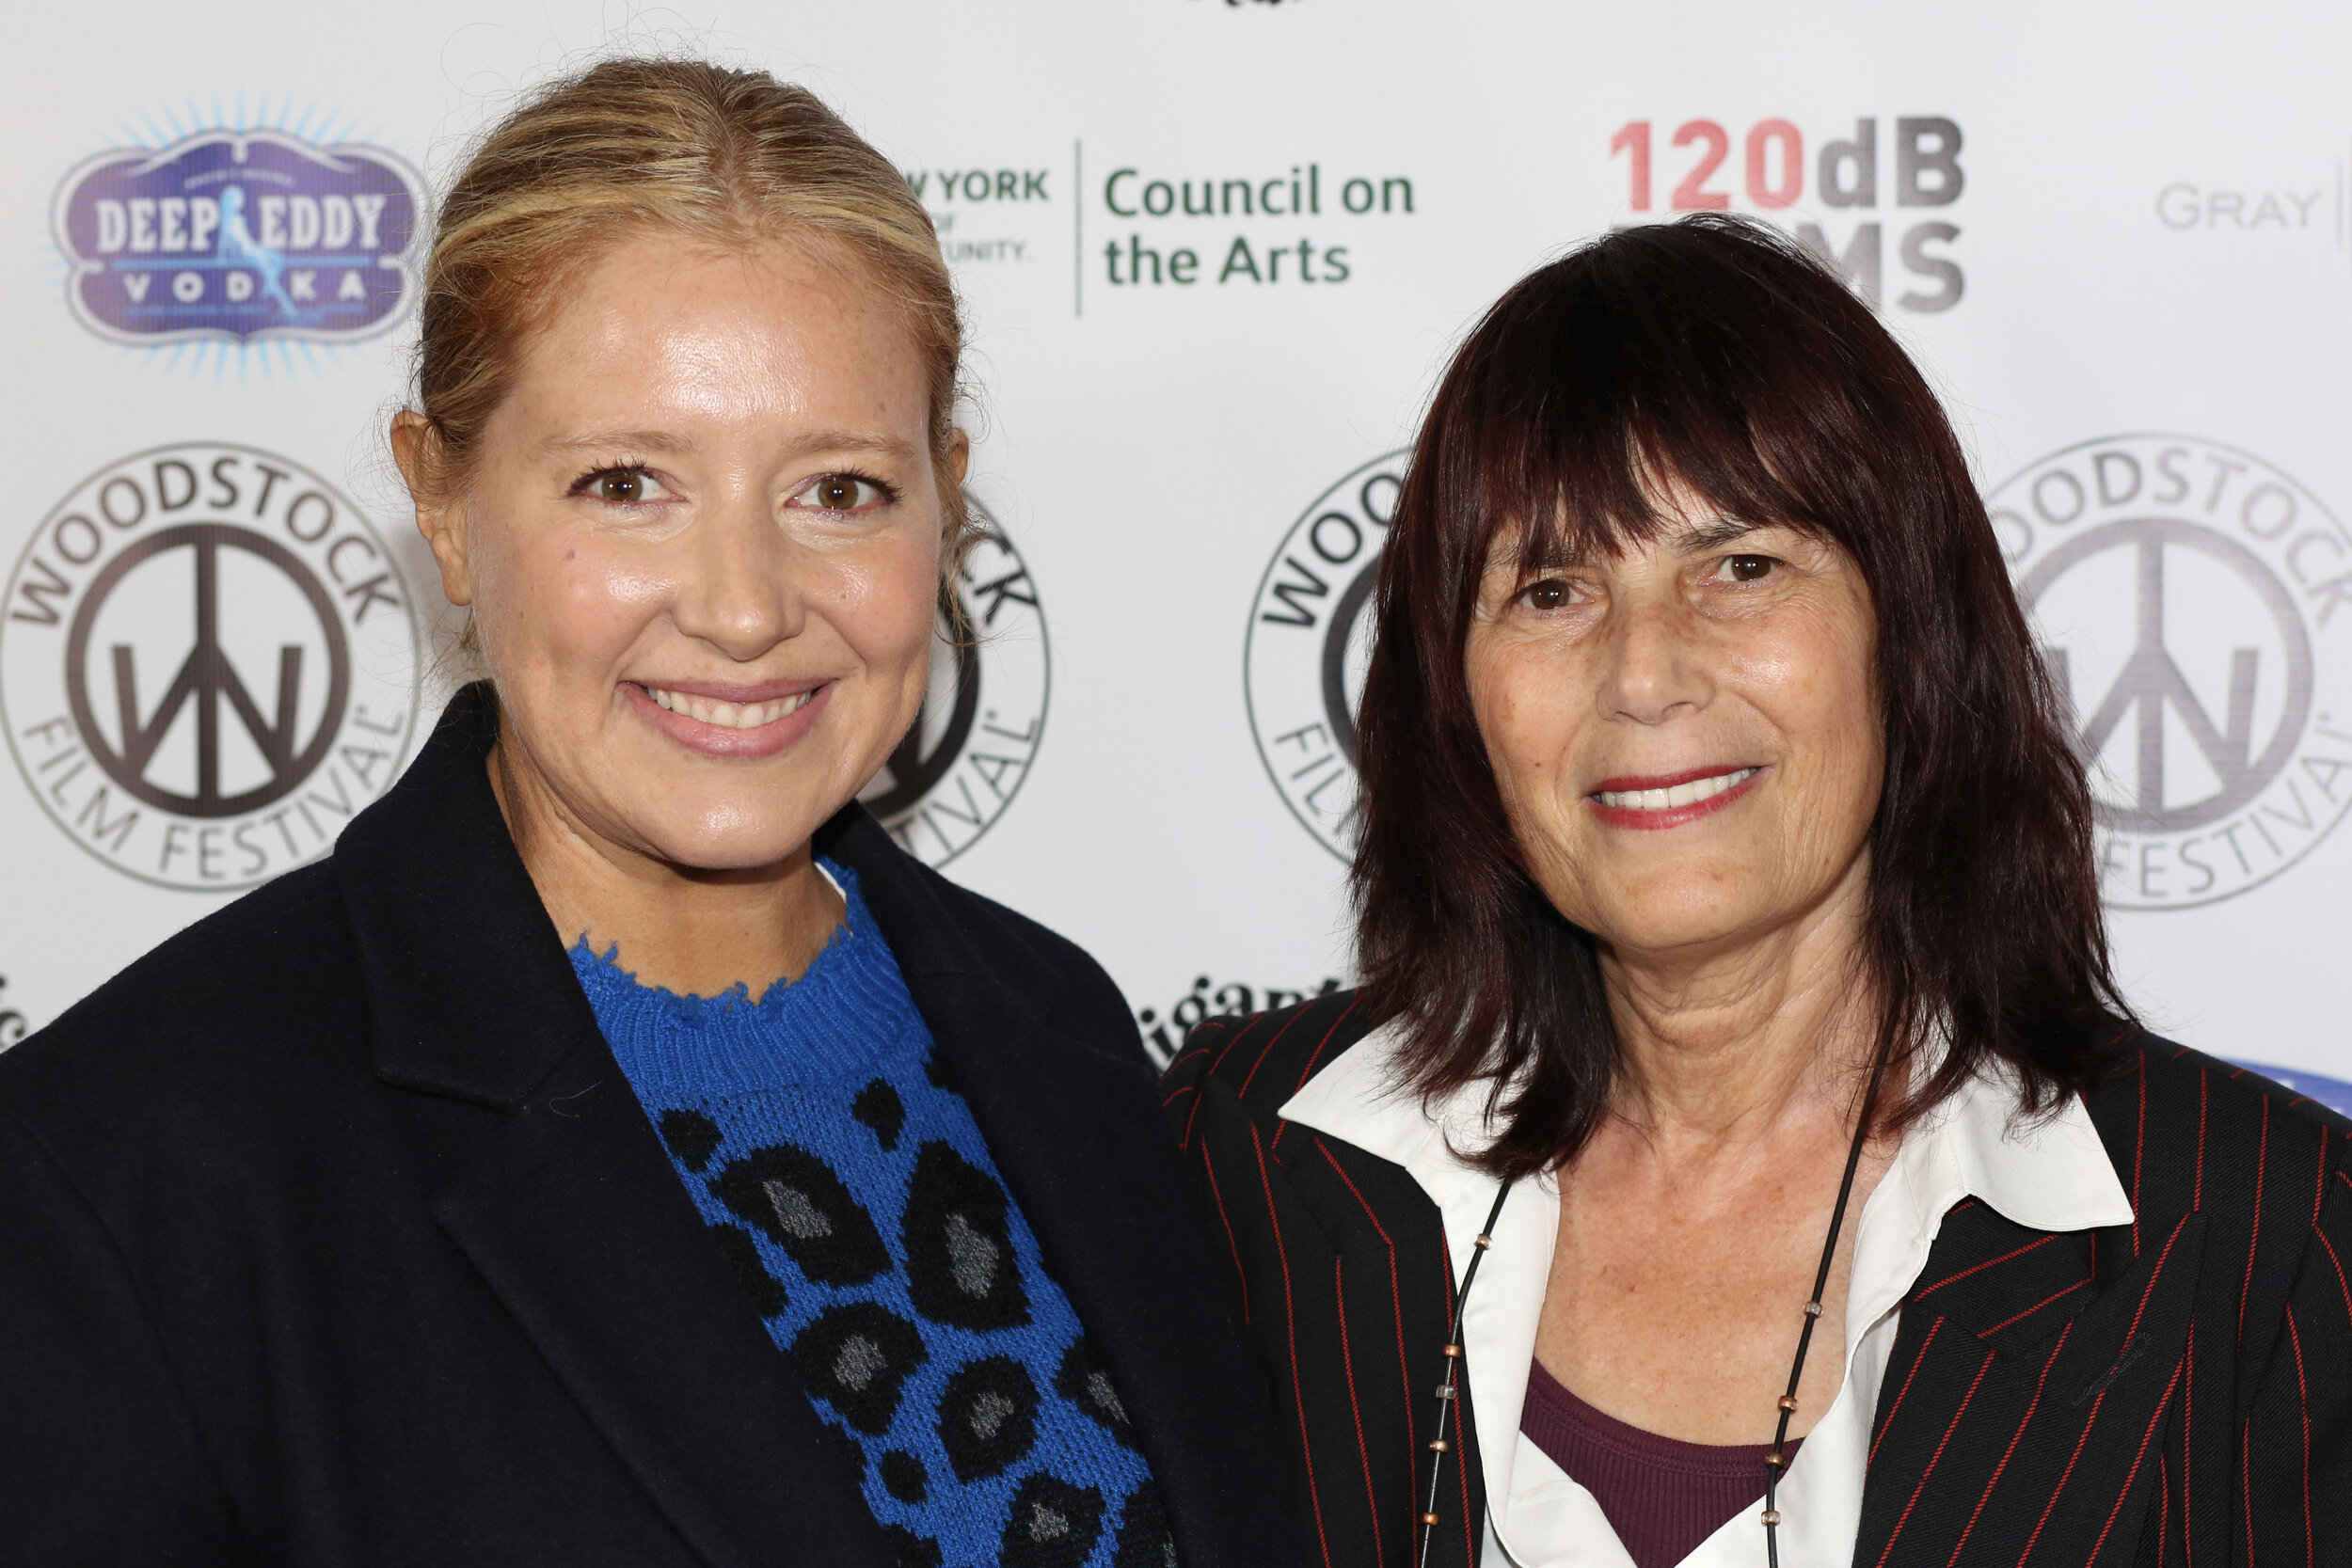 Honey Boy  producer Daniela Taplin (left) with Woodstock Film Festival co-founder and executive director Meira Blaustein (right)